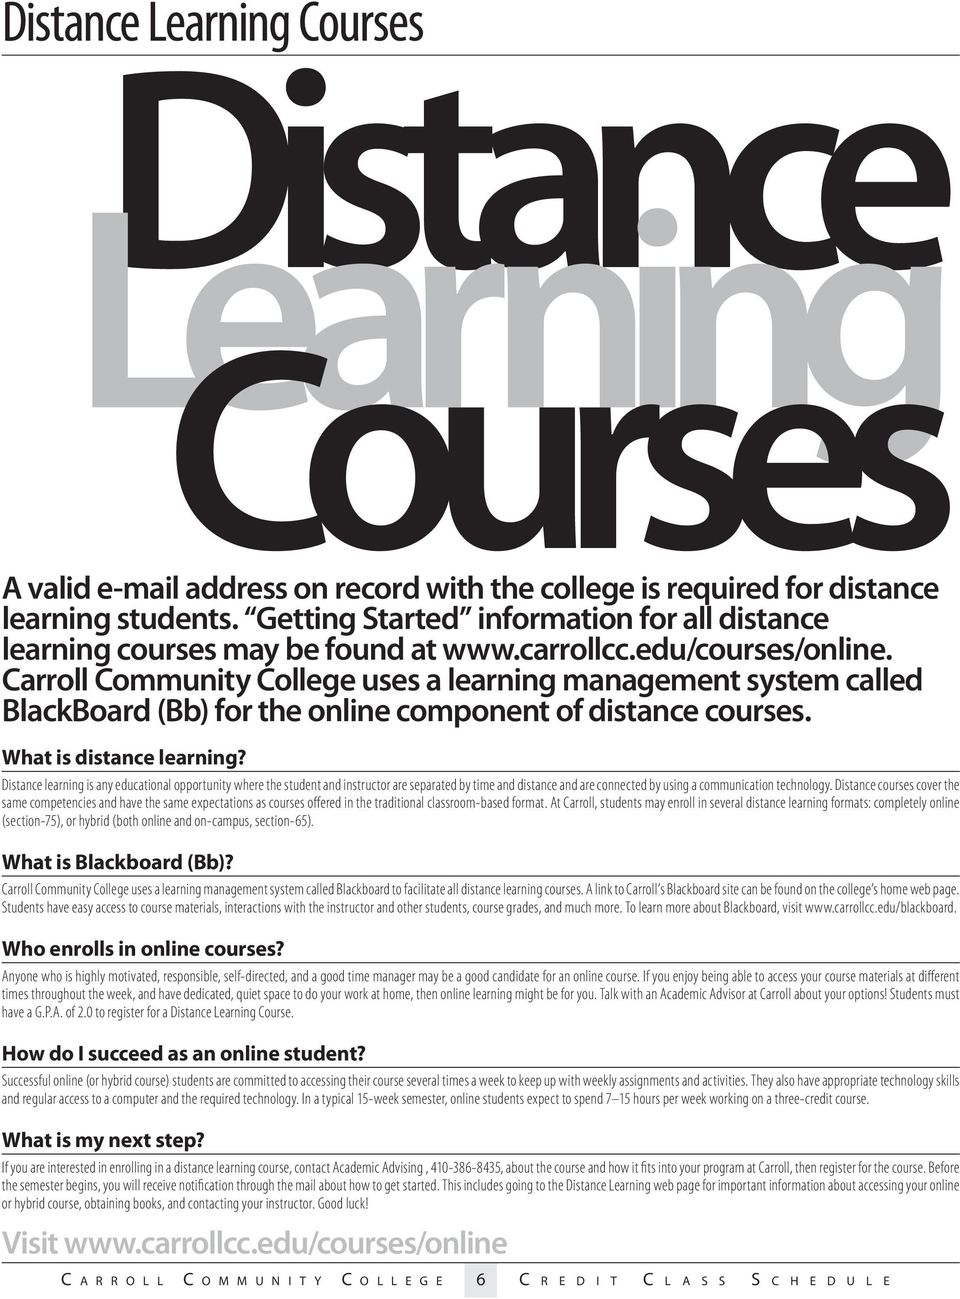 Carroll Community College uses a learning management system called BlackBoard (Bb) for the online component of distance courses. What is distance learning?